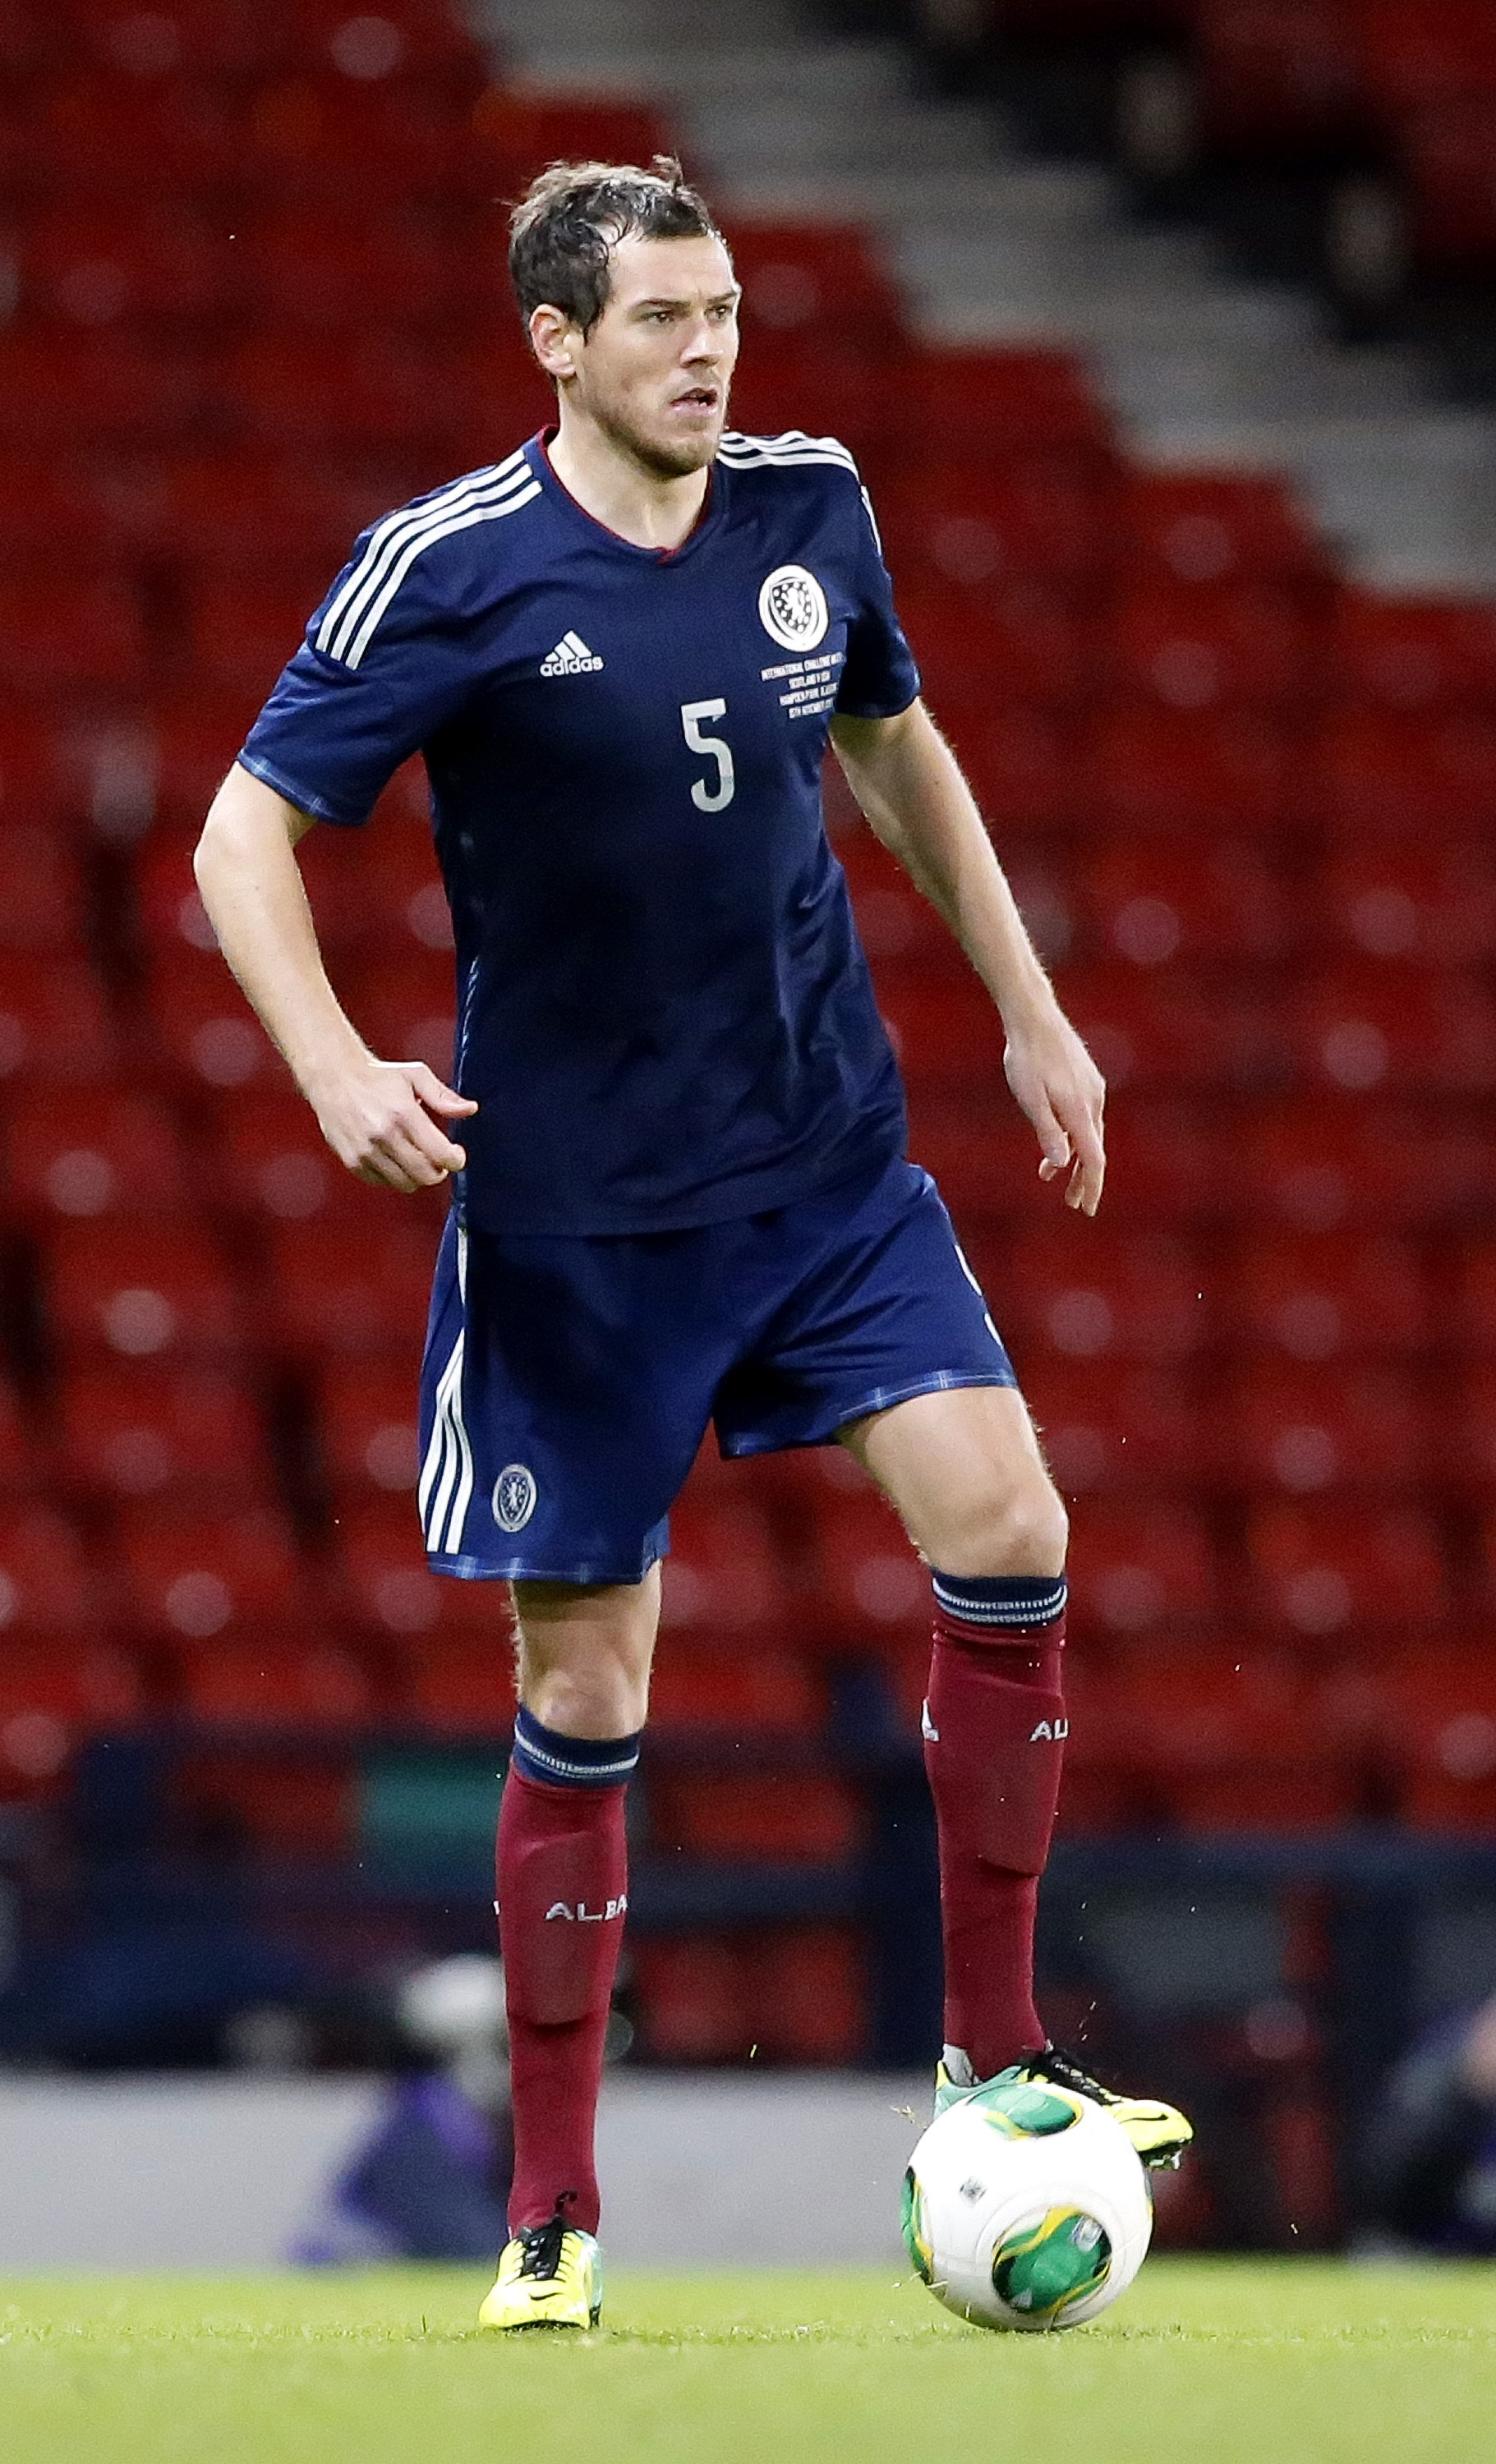 Gordon Greer is in the Scotland squad to face Nigeria